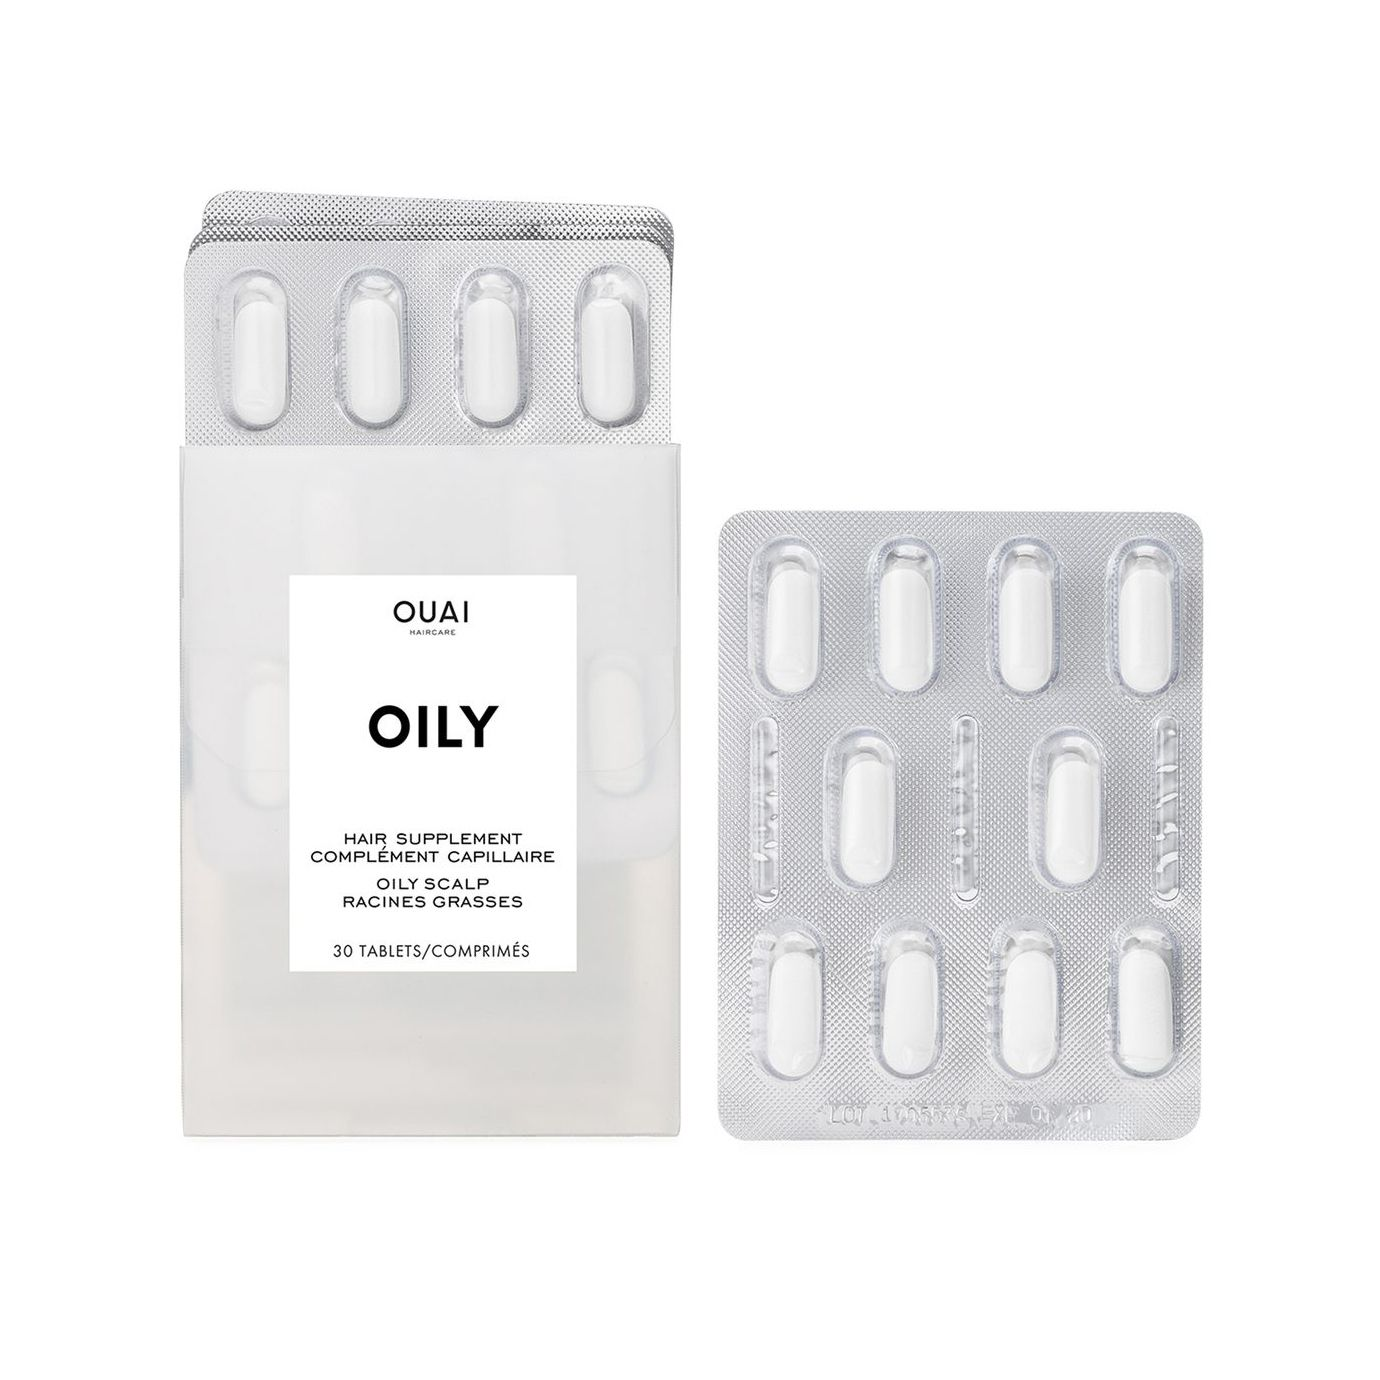 OUAI Oily Hair Supplements